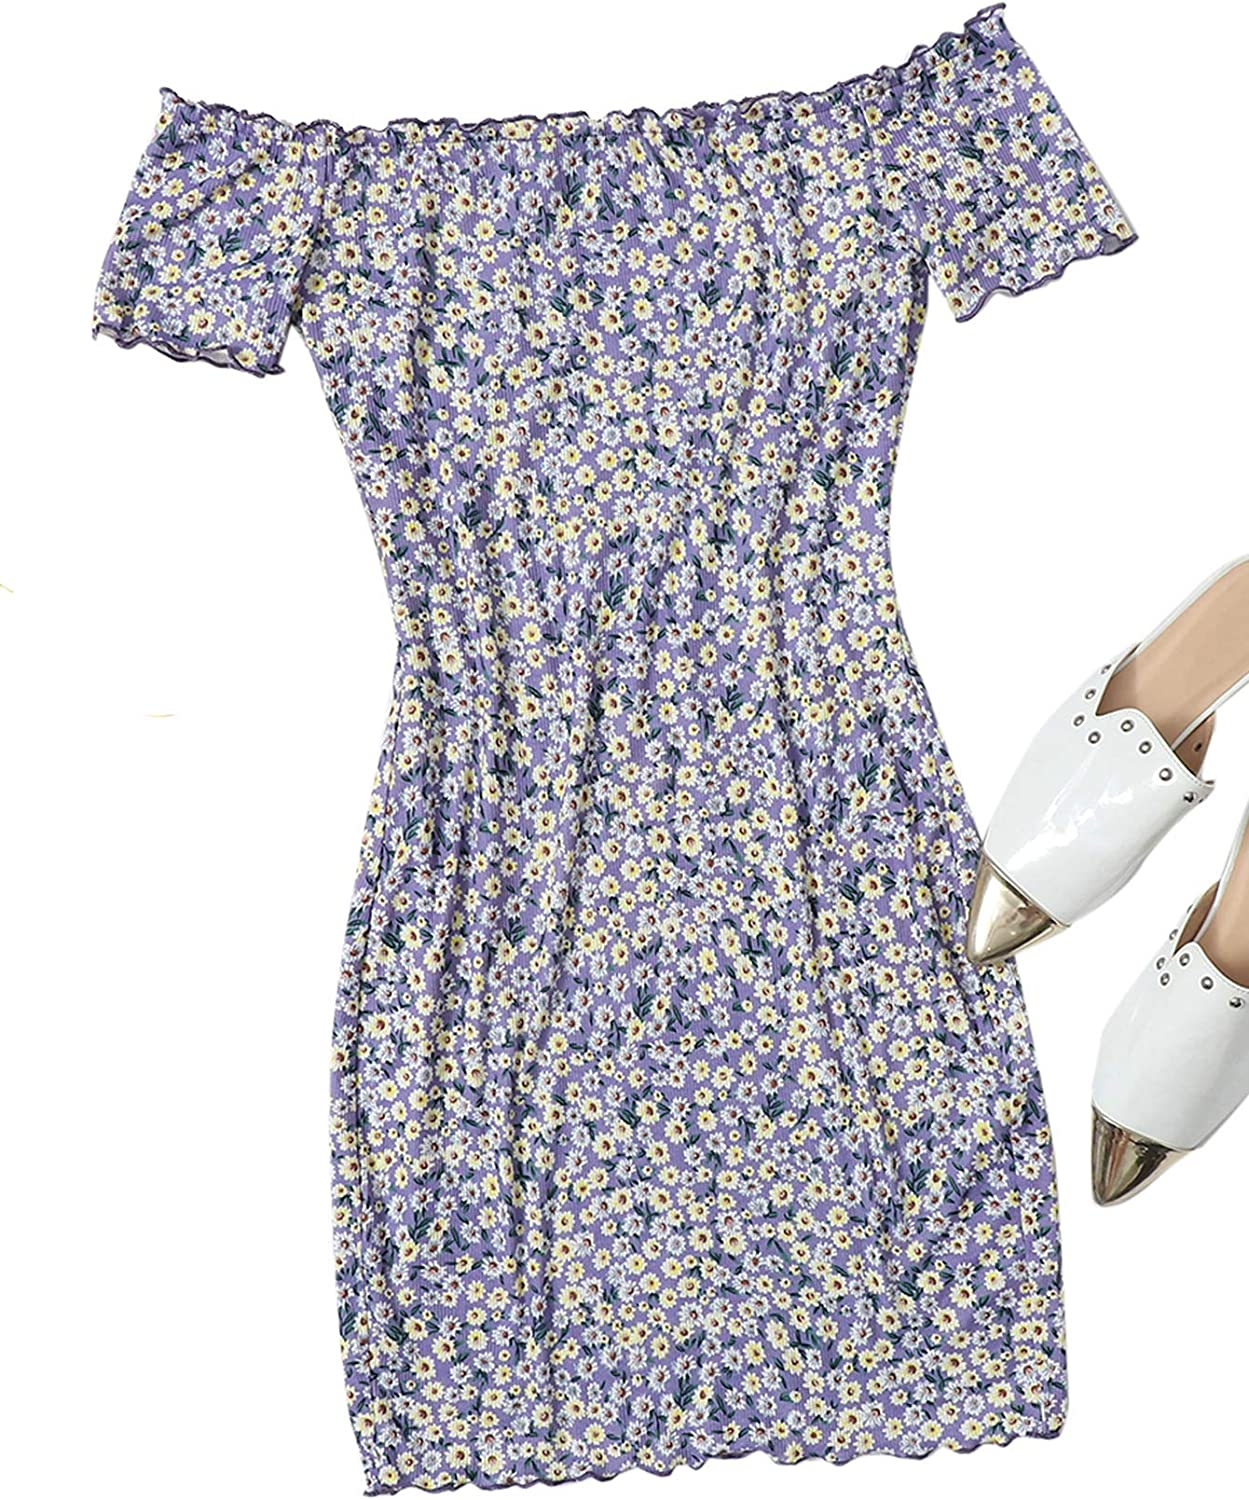 Floerns Women's Casual Ditsy Floral Summer Bodycon Off The Shoulder Dress